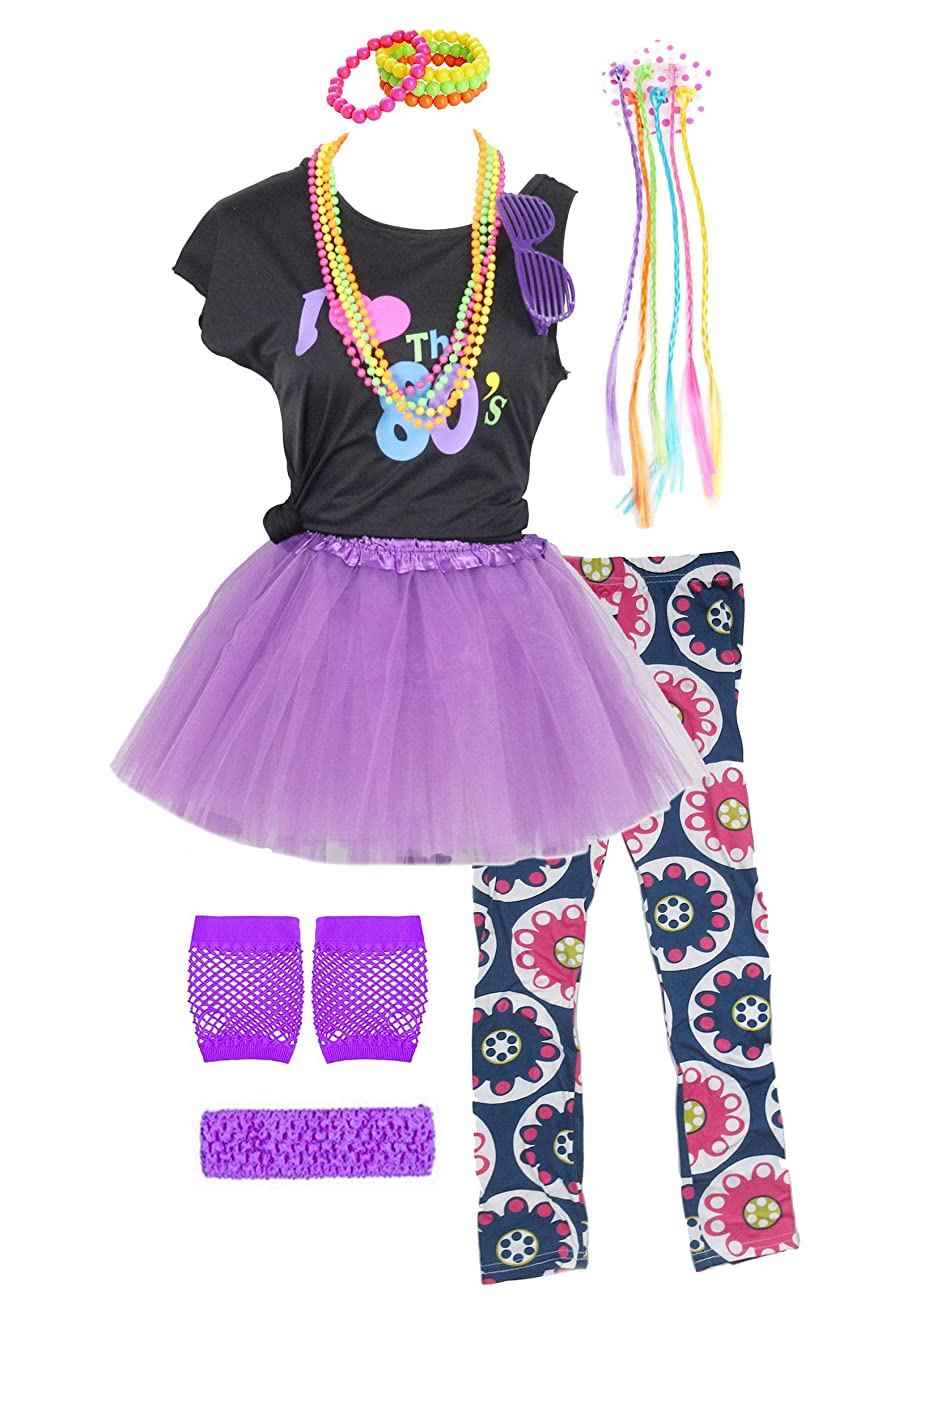 Fashion by Janestone Girls 80s T-Shirt Costume Outfit Accessories Headwear Skirt Leggings Gloves iacacbtlfdt399